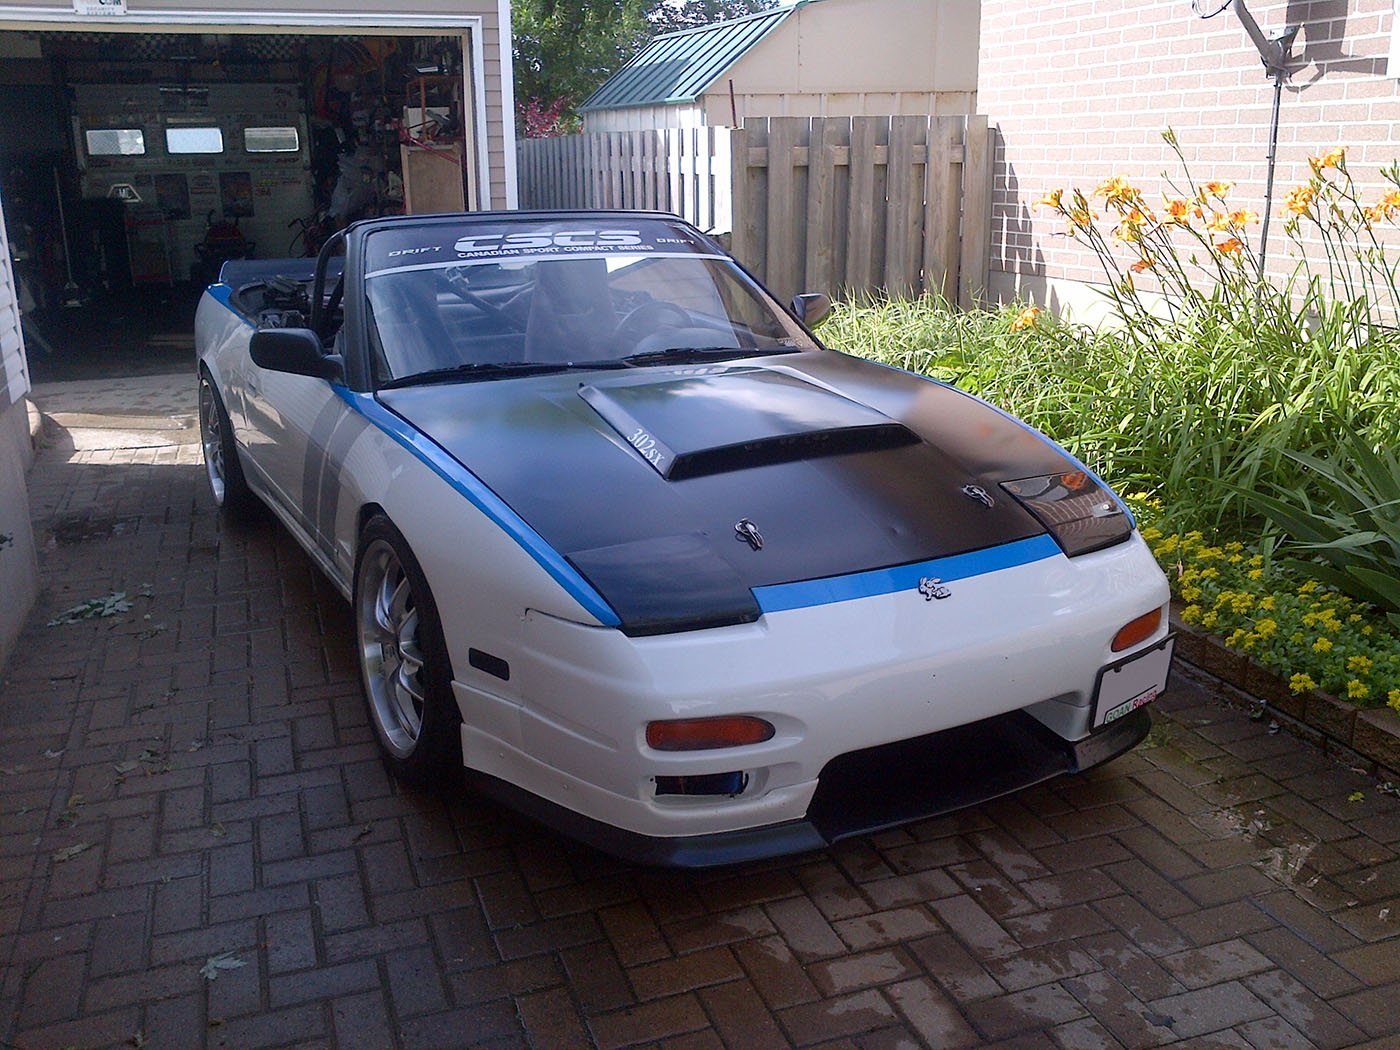 nissan 240sx a ford 302 v8 engine swap depot nissan 240sx a ford 302